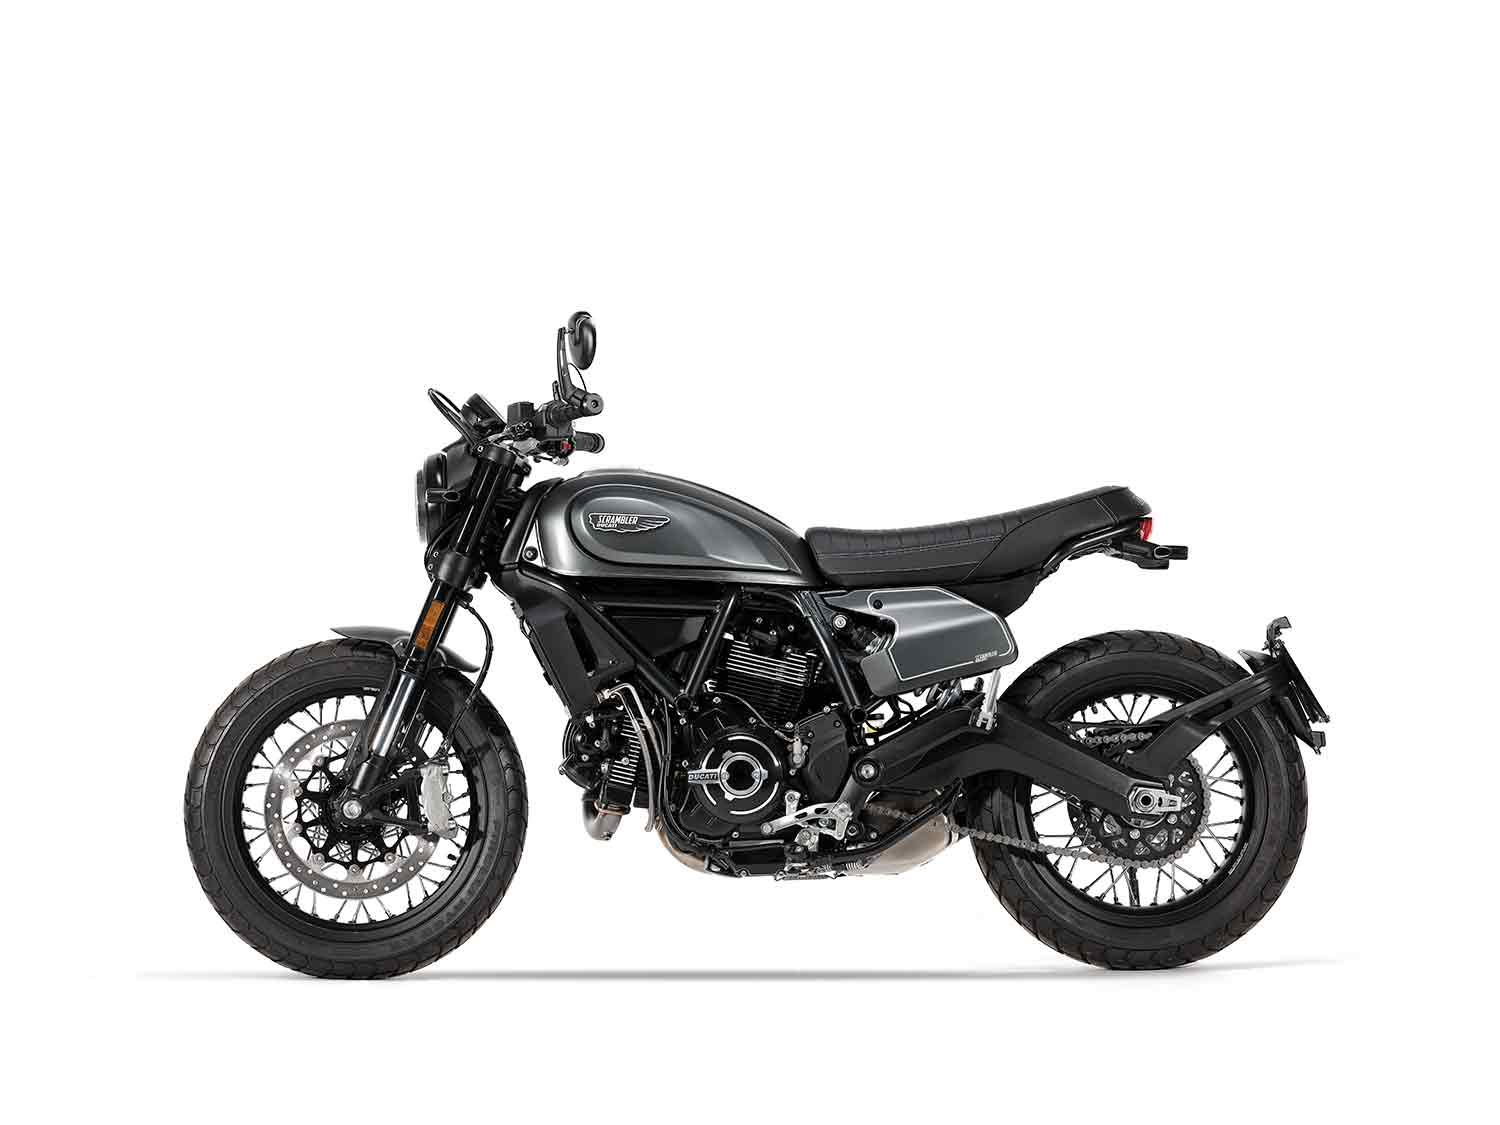 Built around the popular 803cc L-twin platform, the Nightshift fits into the Scrambler line seamlessly.